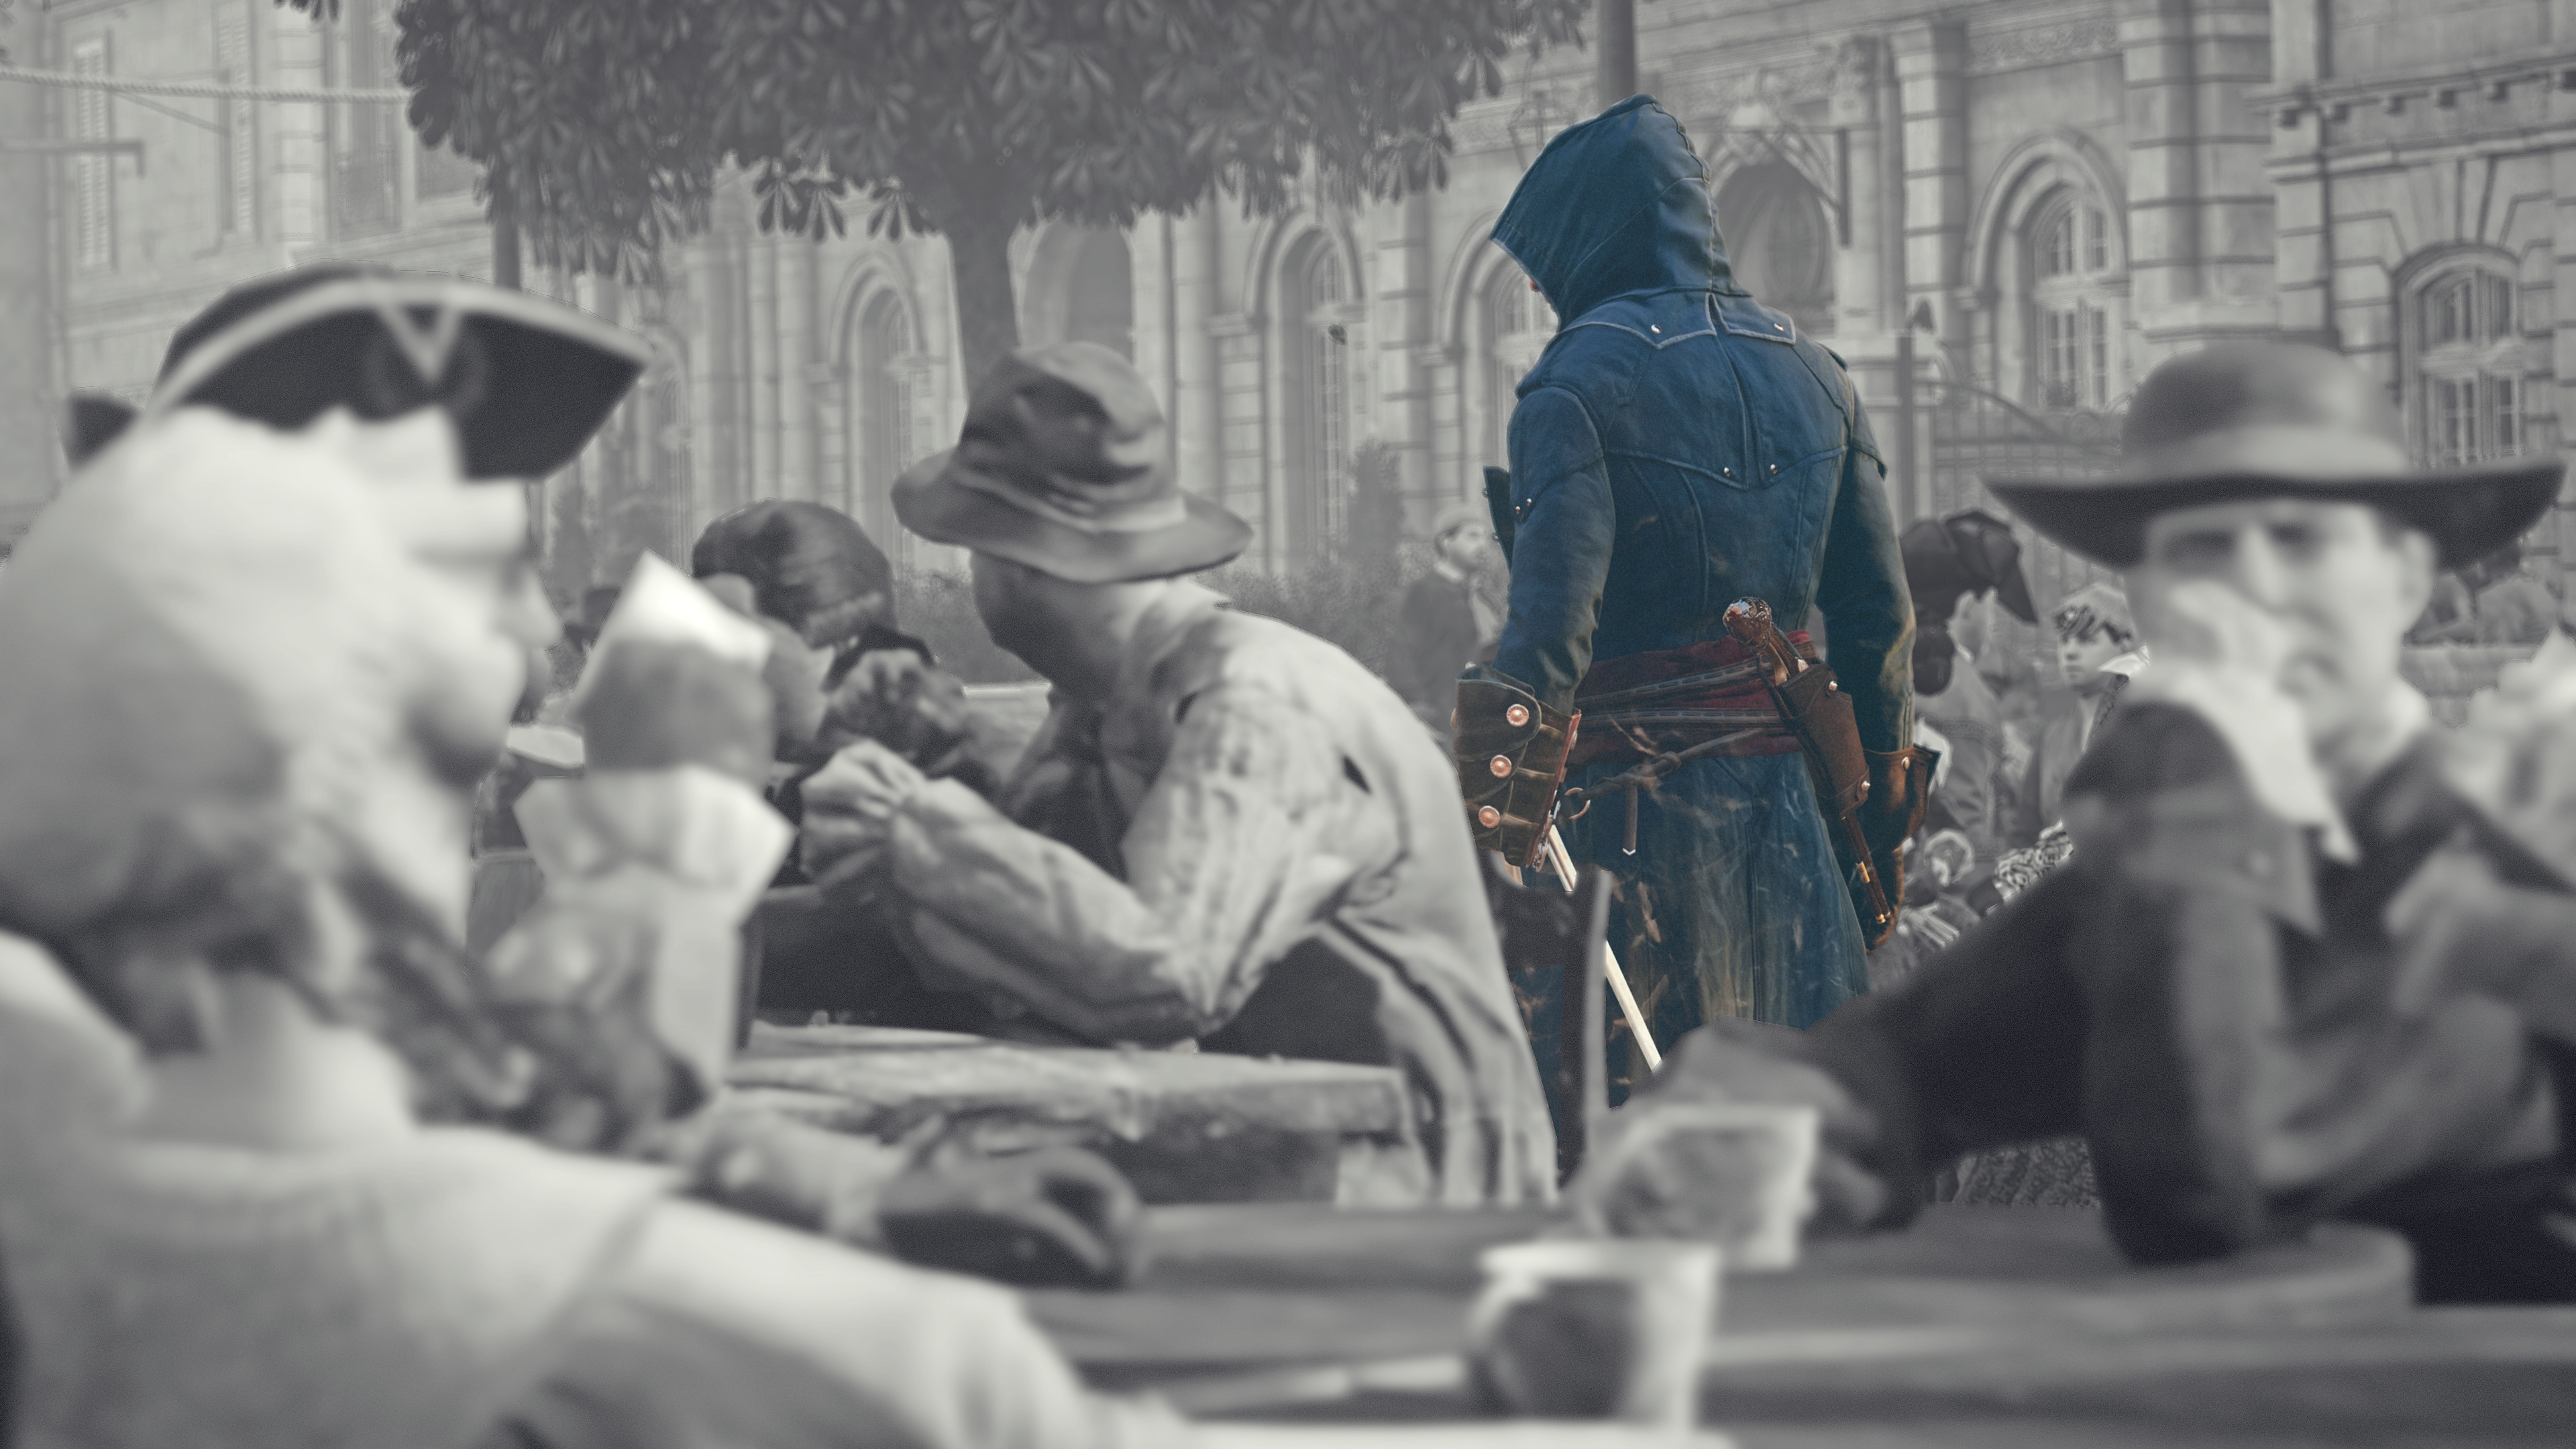 Wallpaper 4k Assassins Creed Unity 5k 2018 Games Wallpapers 4k